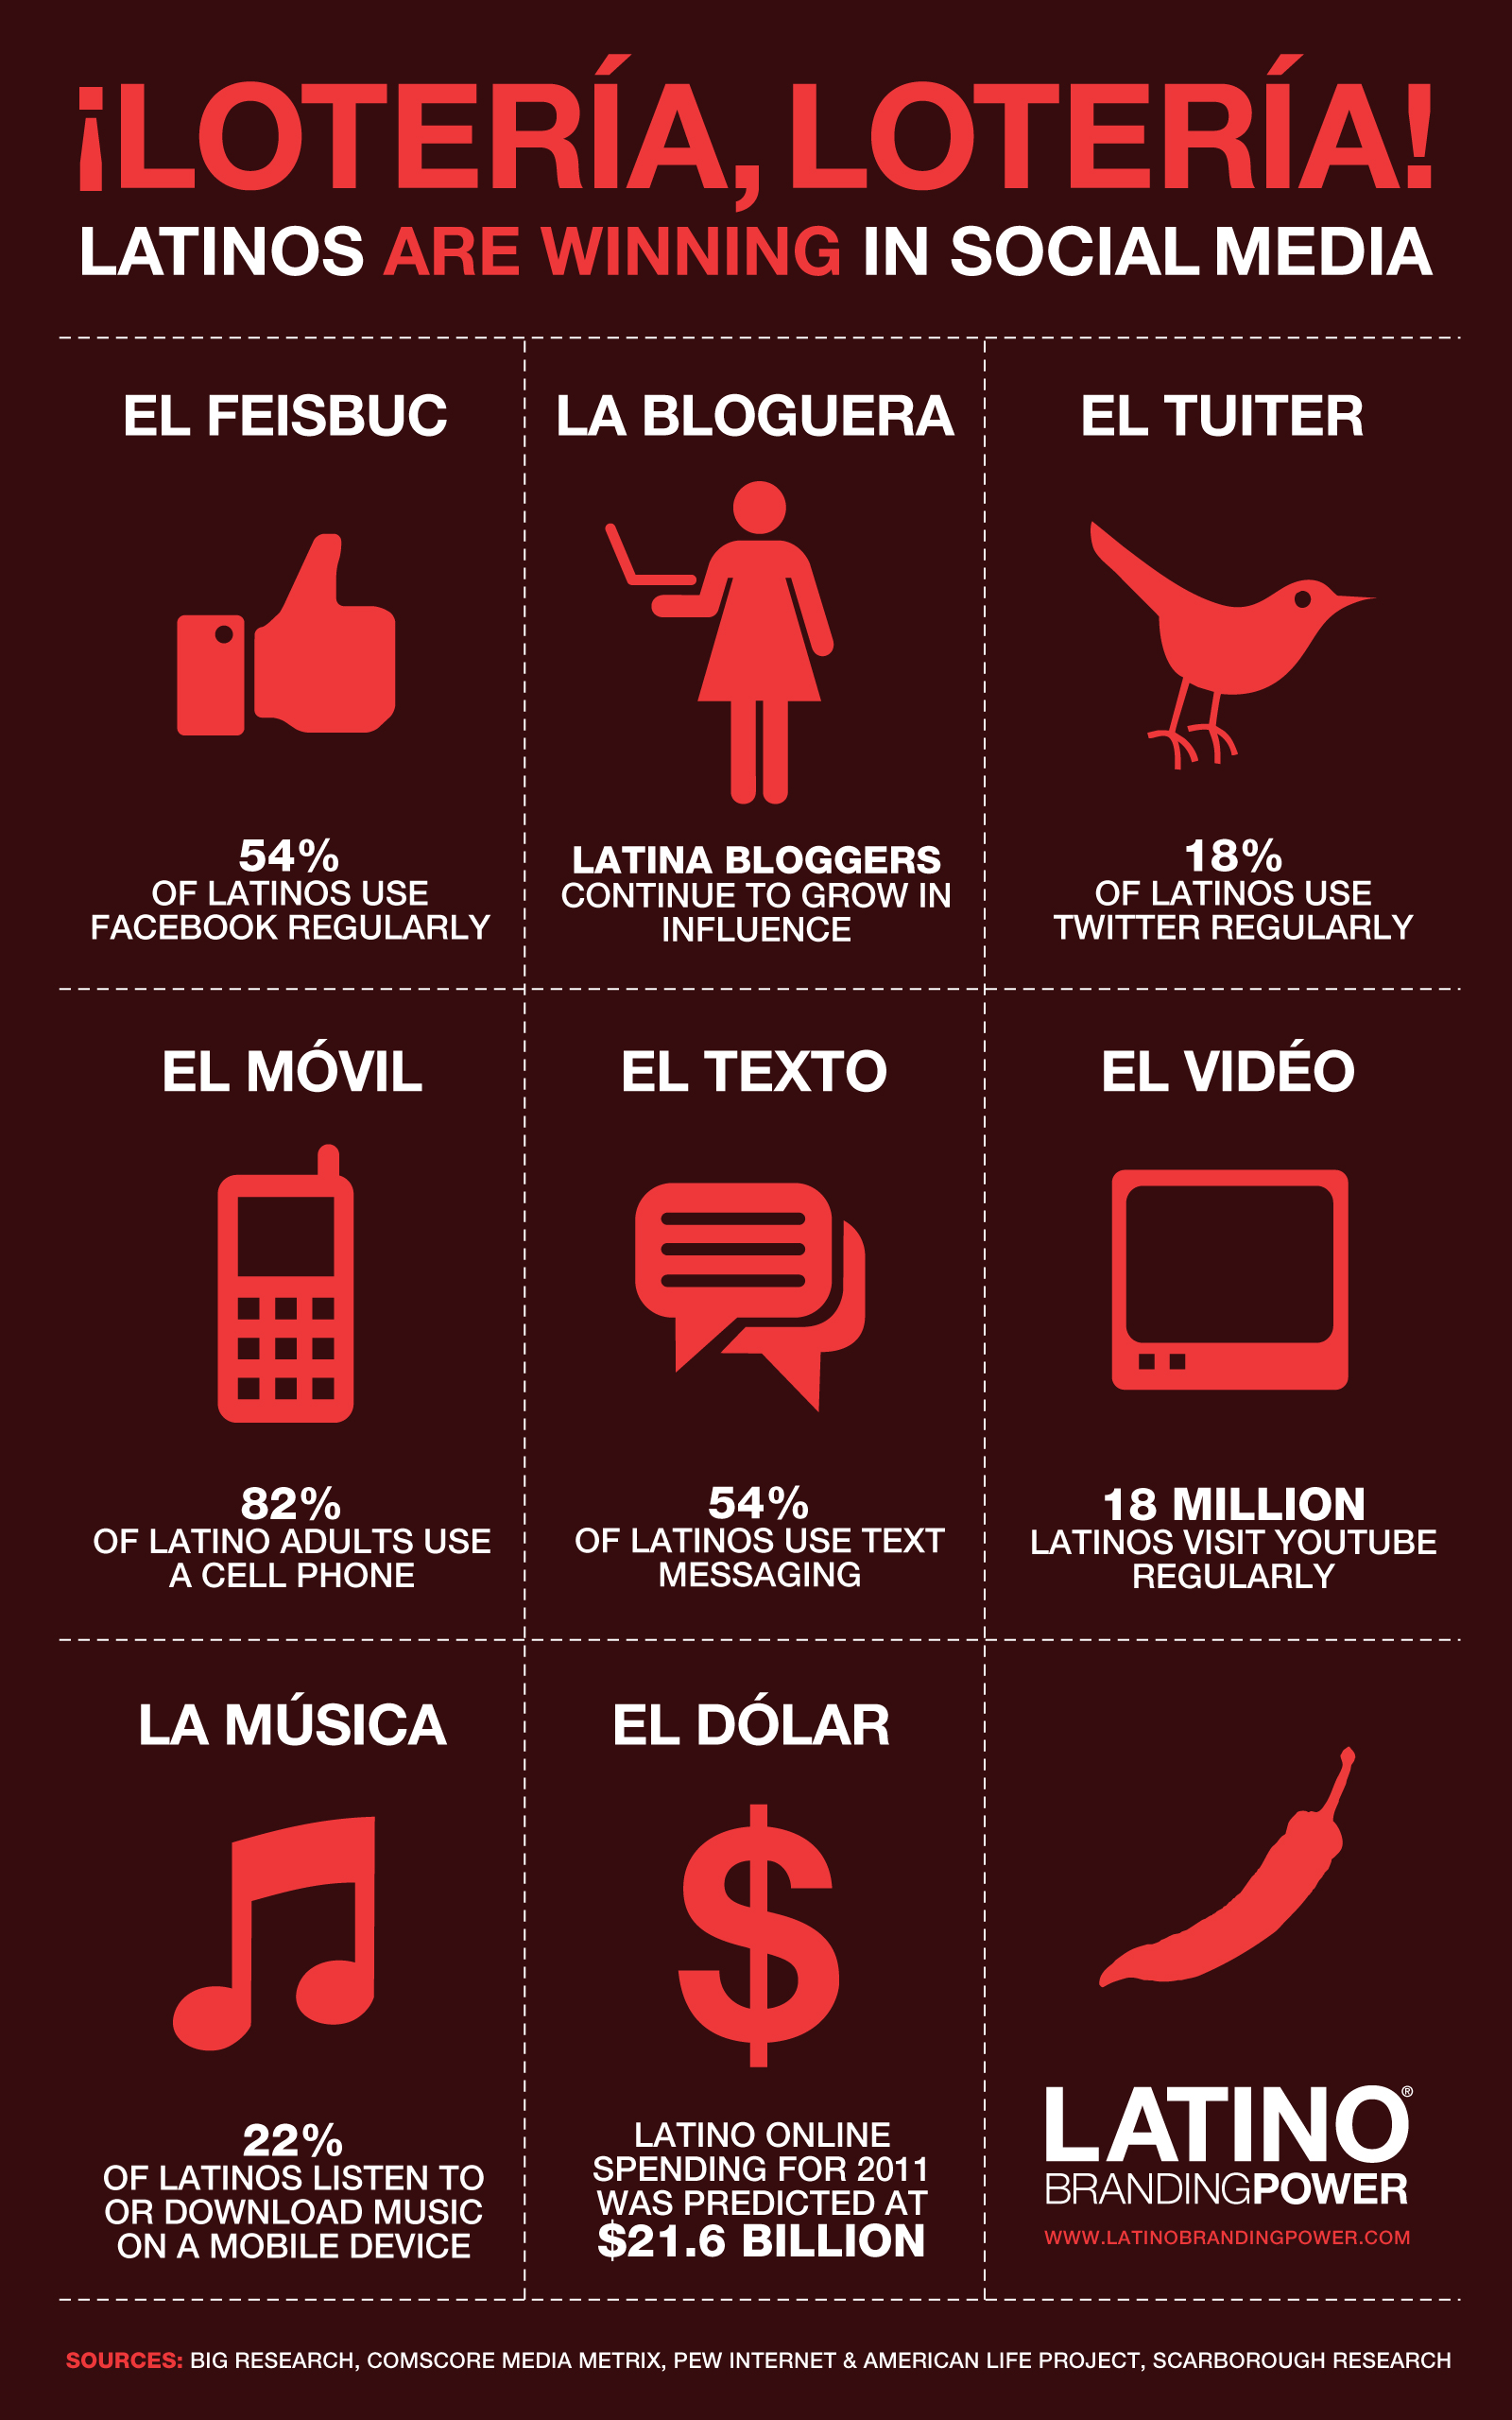 Latinos are winning in social media